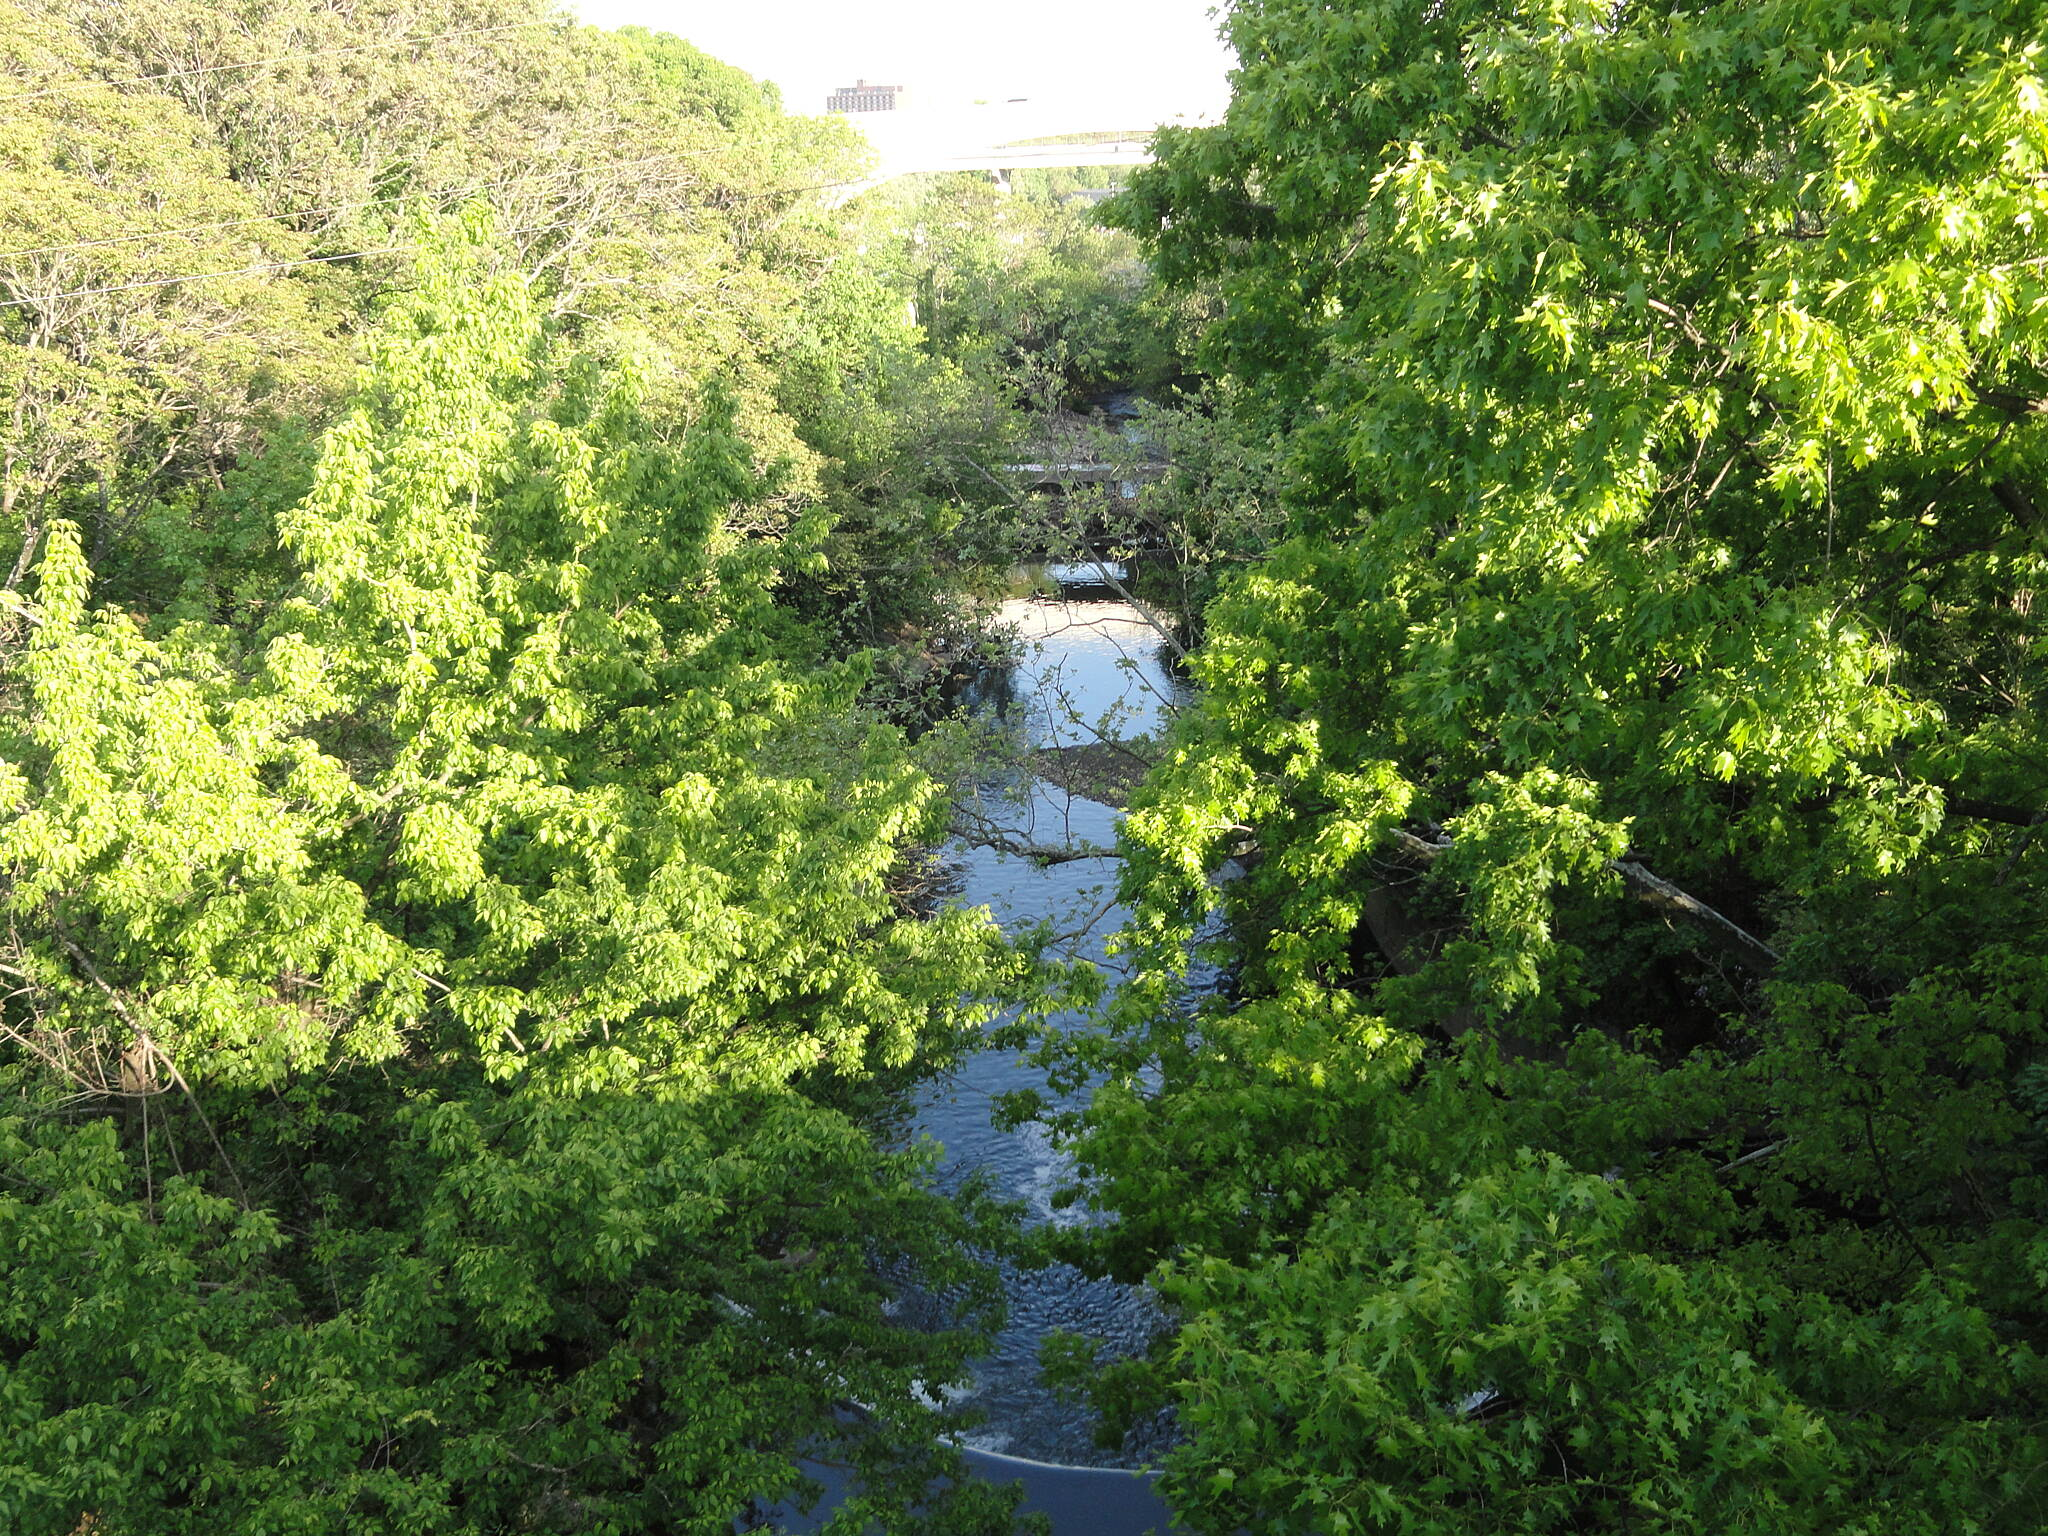 Jones Falls Trail View of the Jones Falls from the Jones Falls Trail Vista from Jones Falls Trail overlooking the stream.  This is a popular spot for night herons.